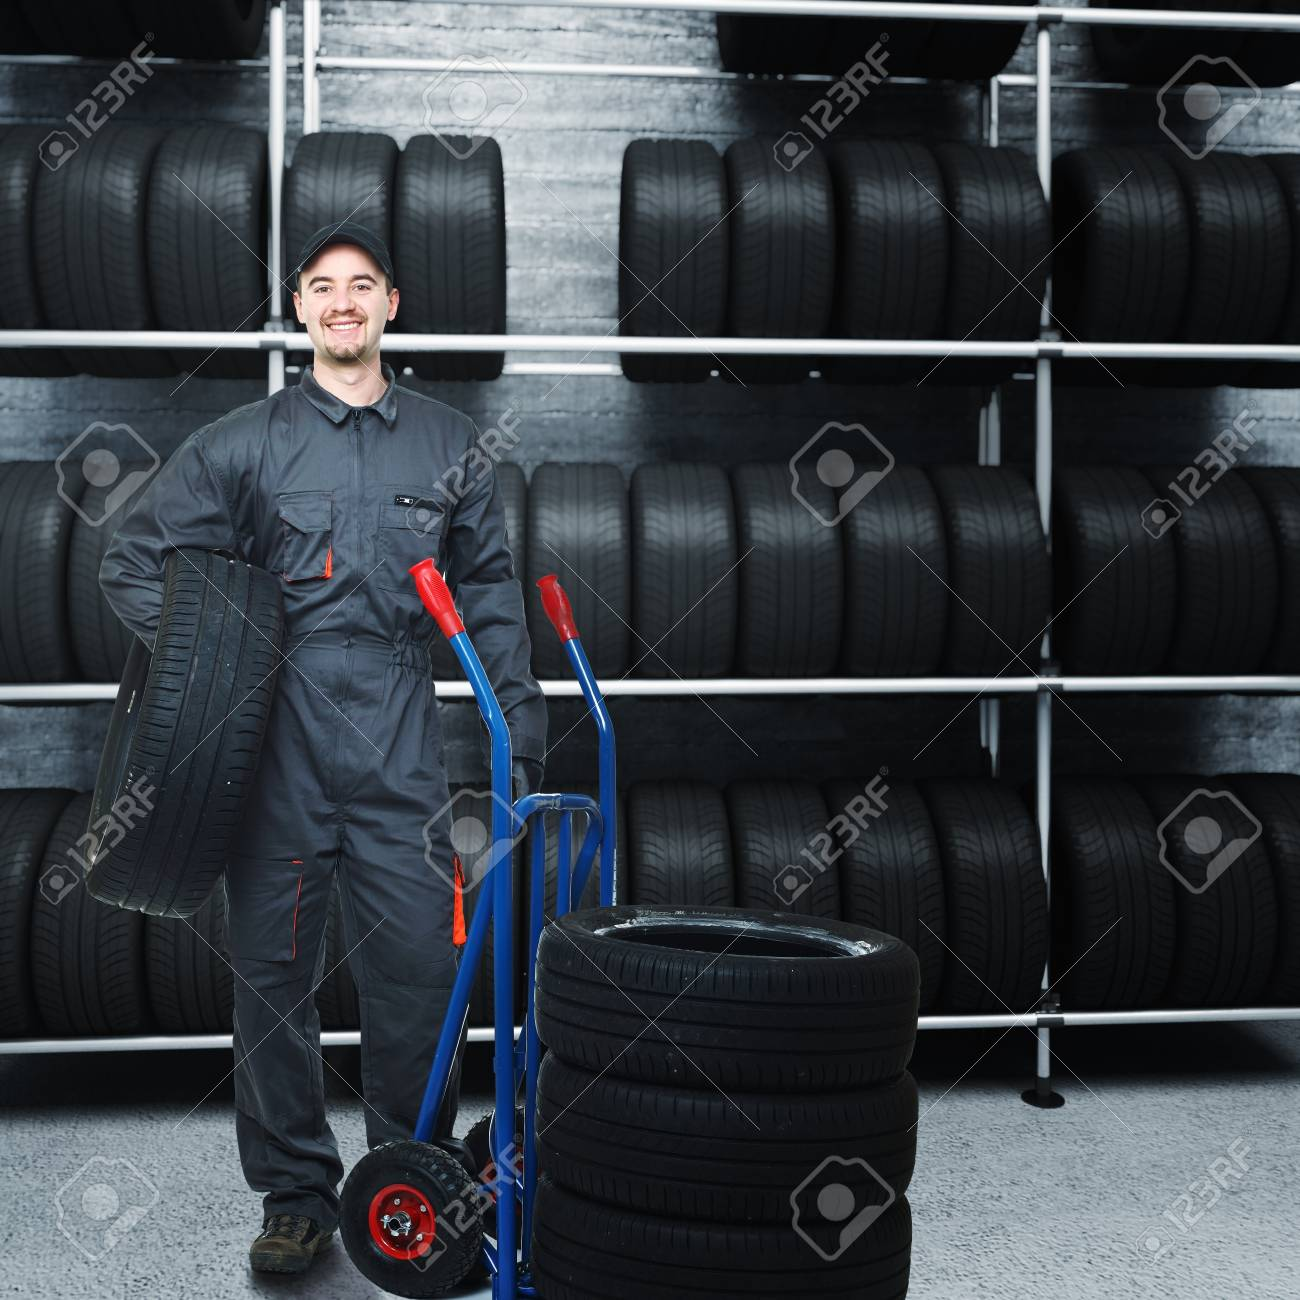 caucasian mechanic at work with tires and 3d garage background Stock Photo - 8943882